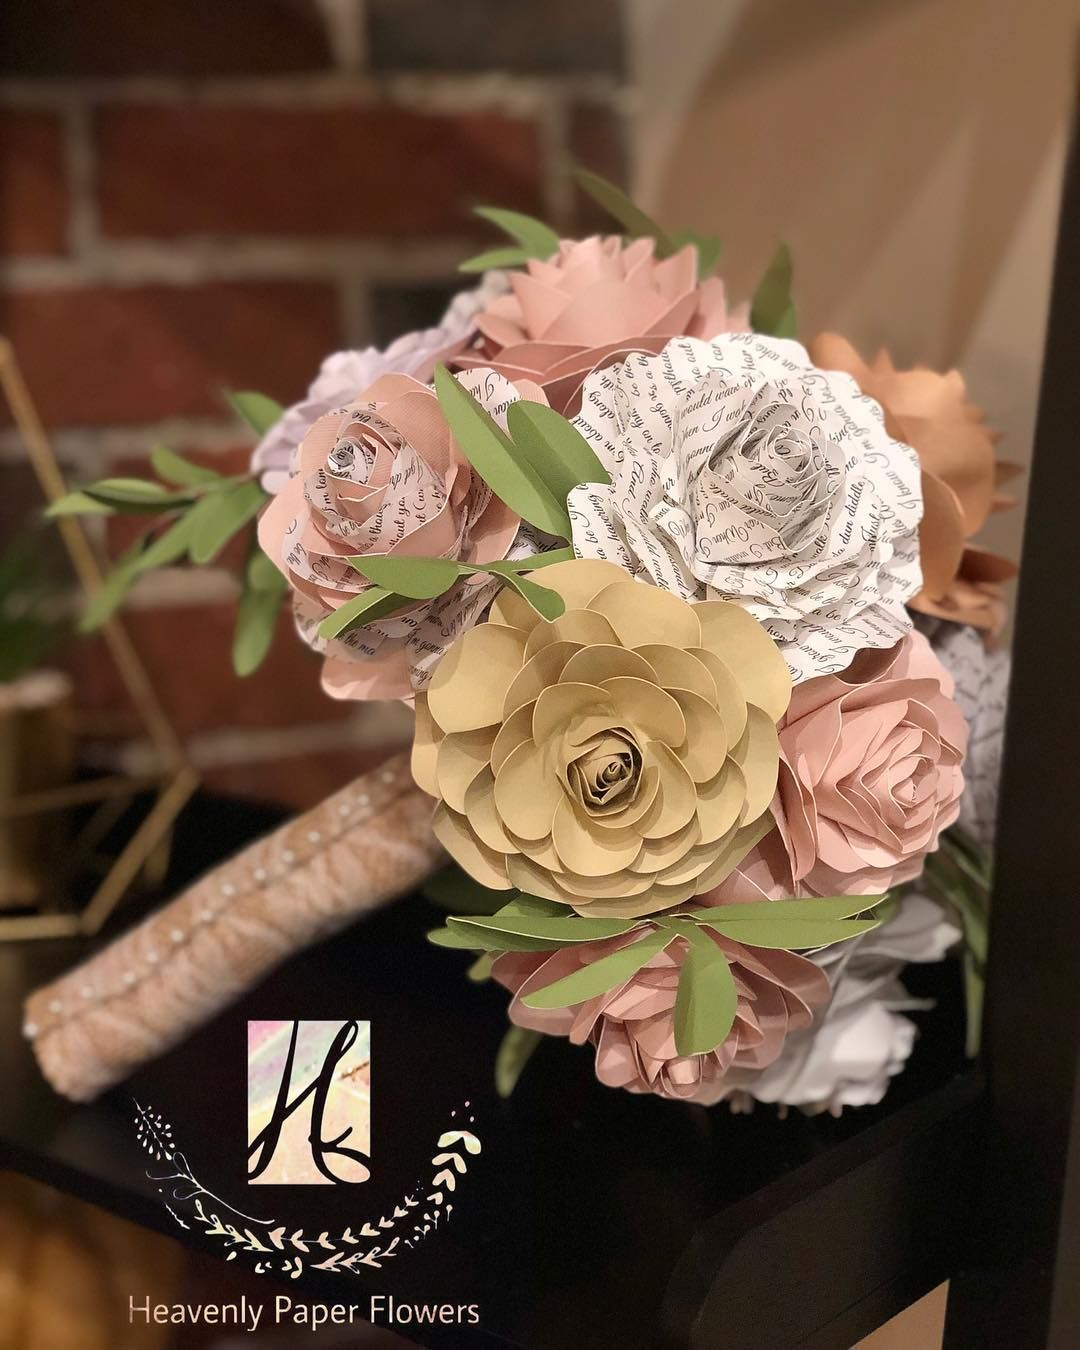 A Beautiful Bouquet Of Paper Flowers Made From Recycled Paper